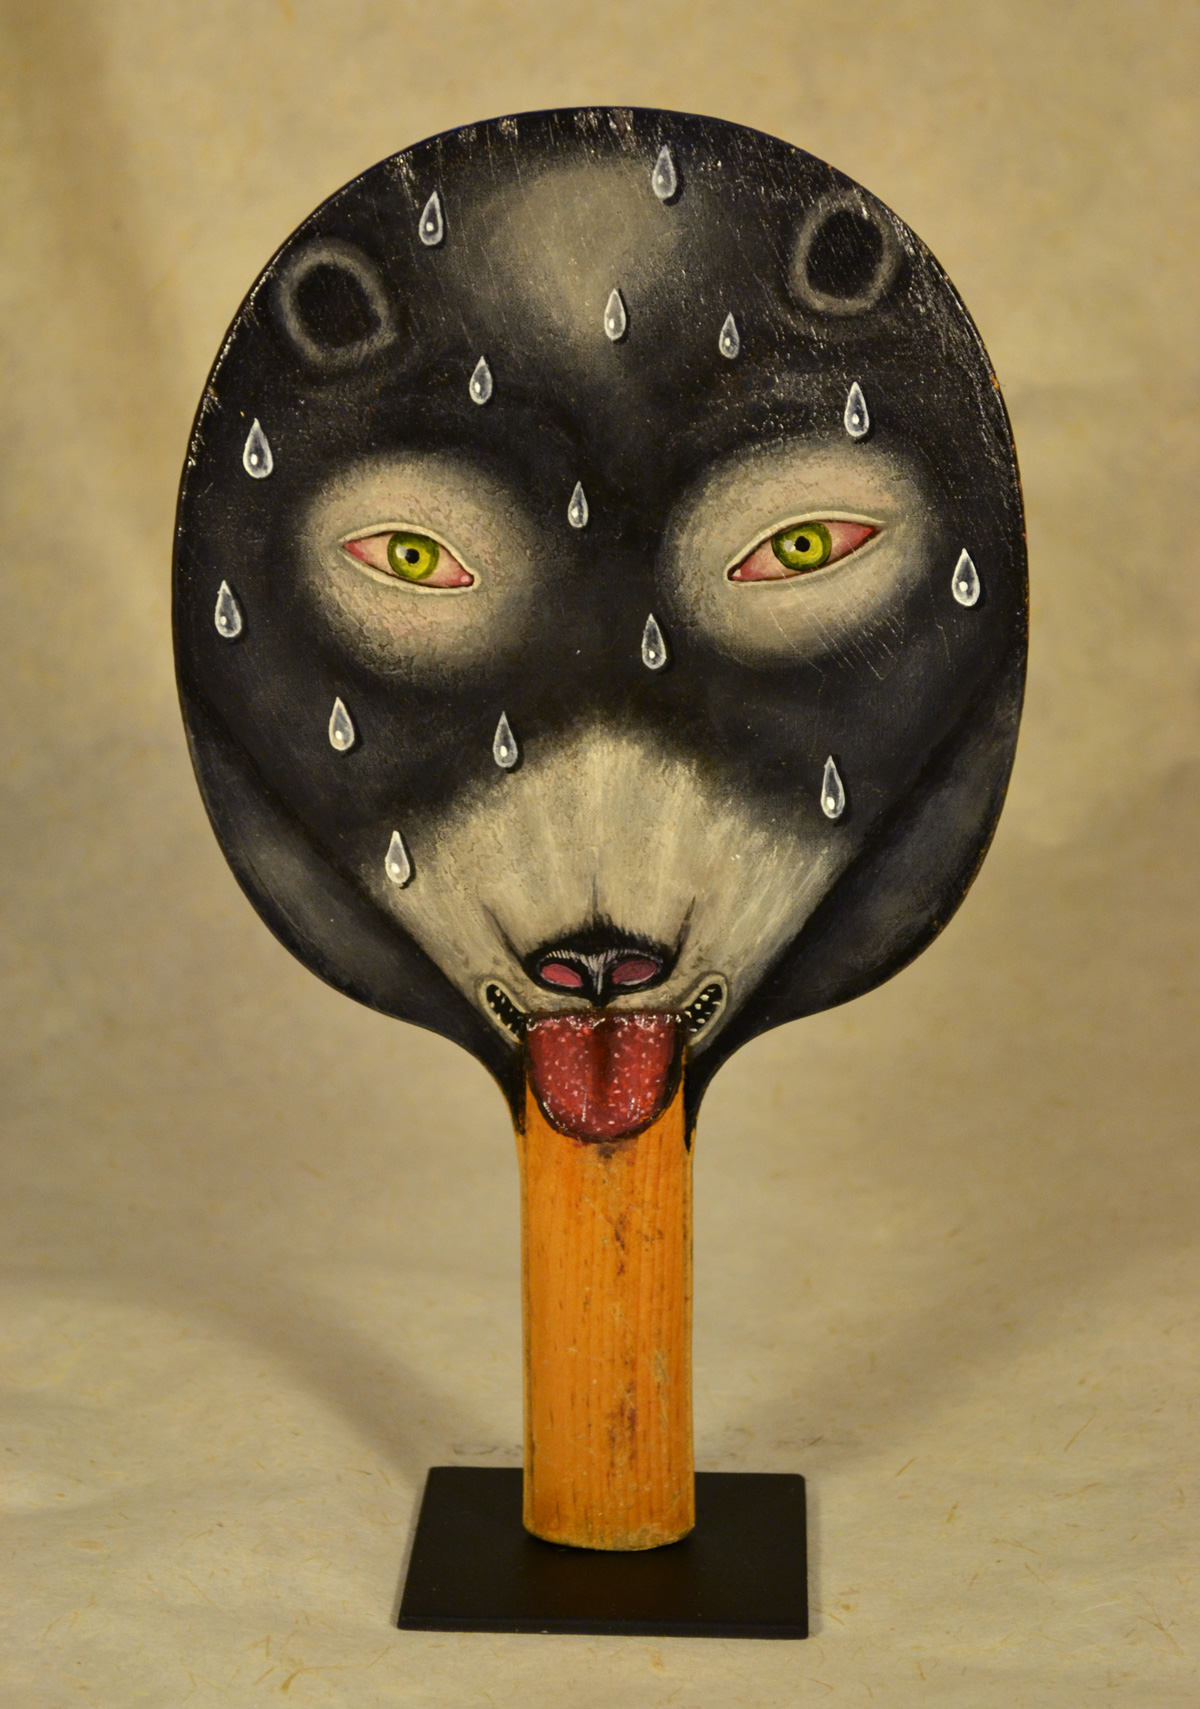 Fred Stoenhouse, Bear padle, 2018, acrylic on vintage ping-pong paddle,  26×16 cm